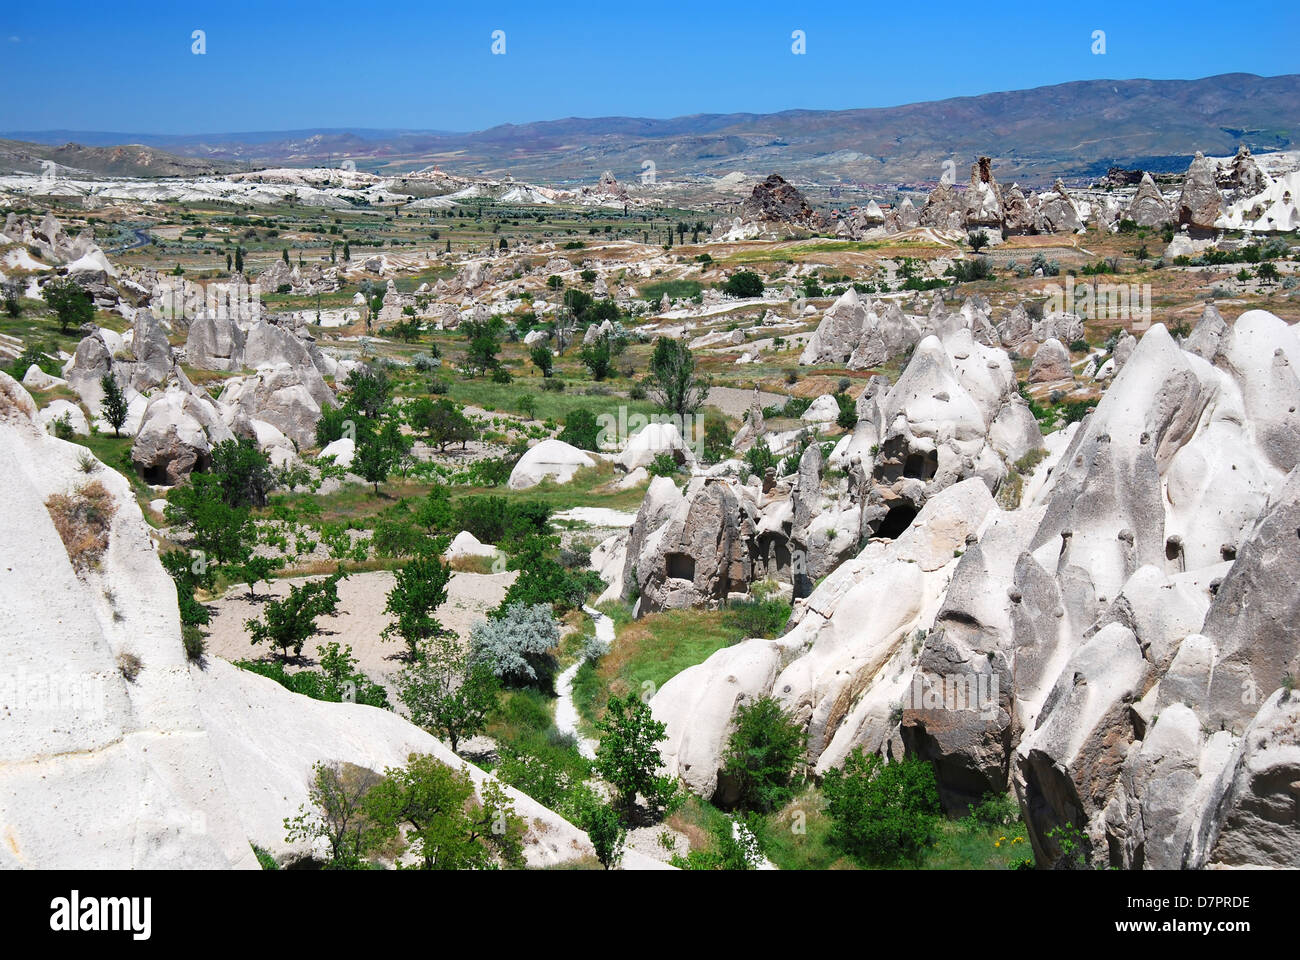 Kiliklar valley is near Goreme Open Air Museum, one of the most interesting places from Cappadocia. - Stock Image